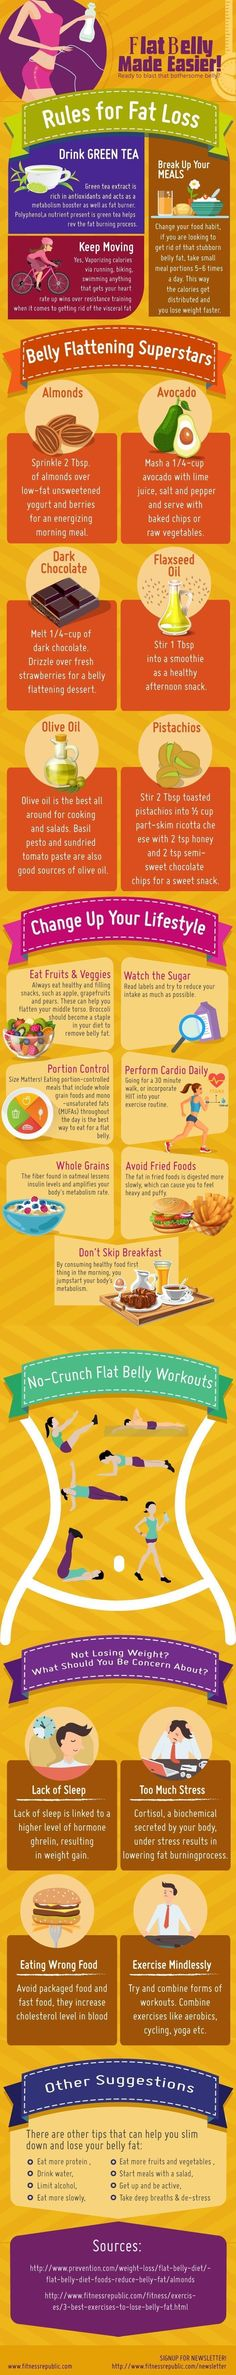 nice Infographic: How To Attain A Flat Belly